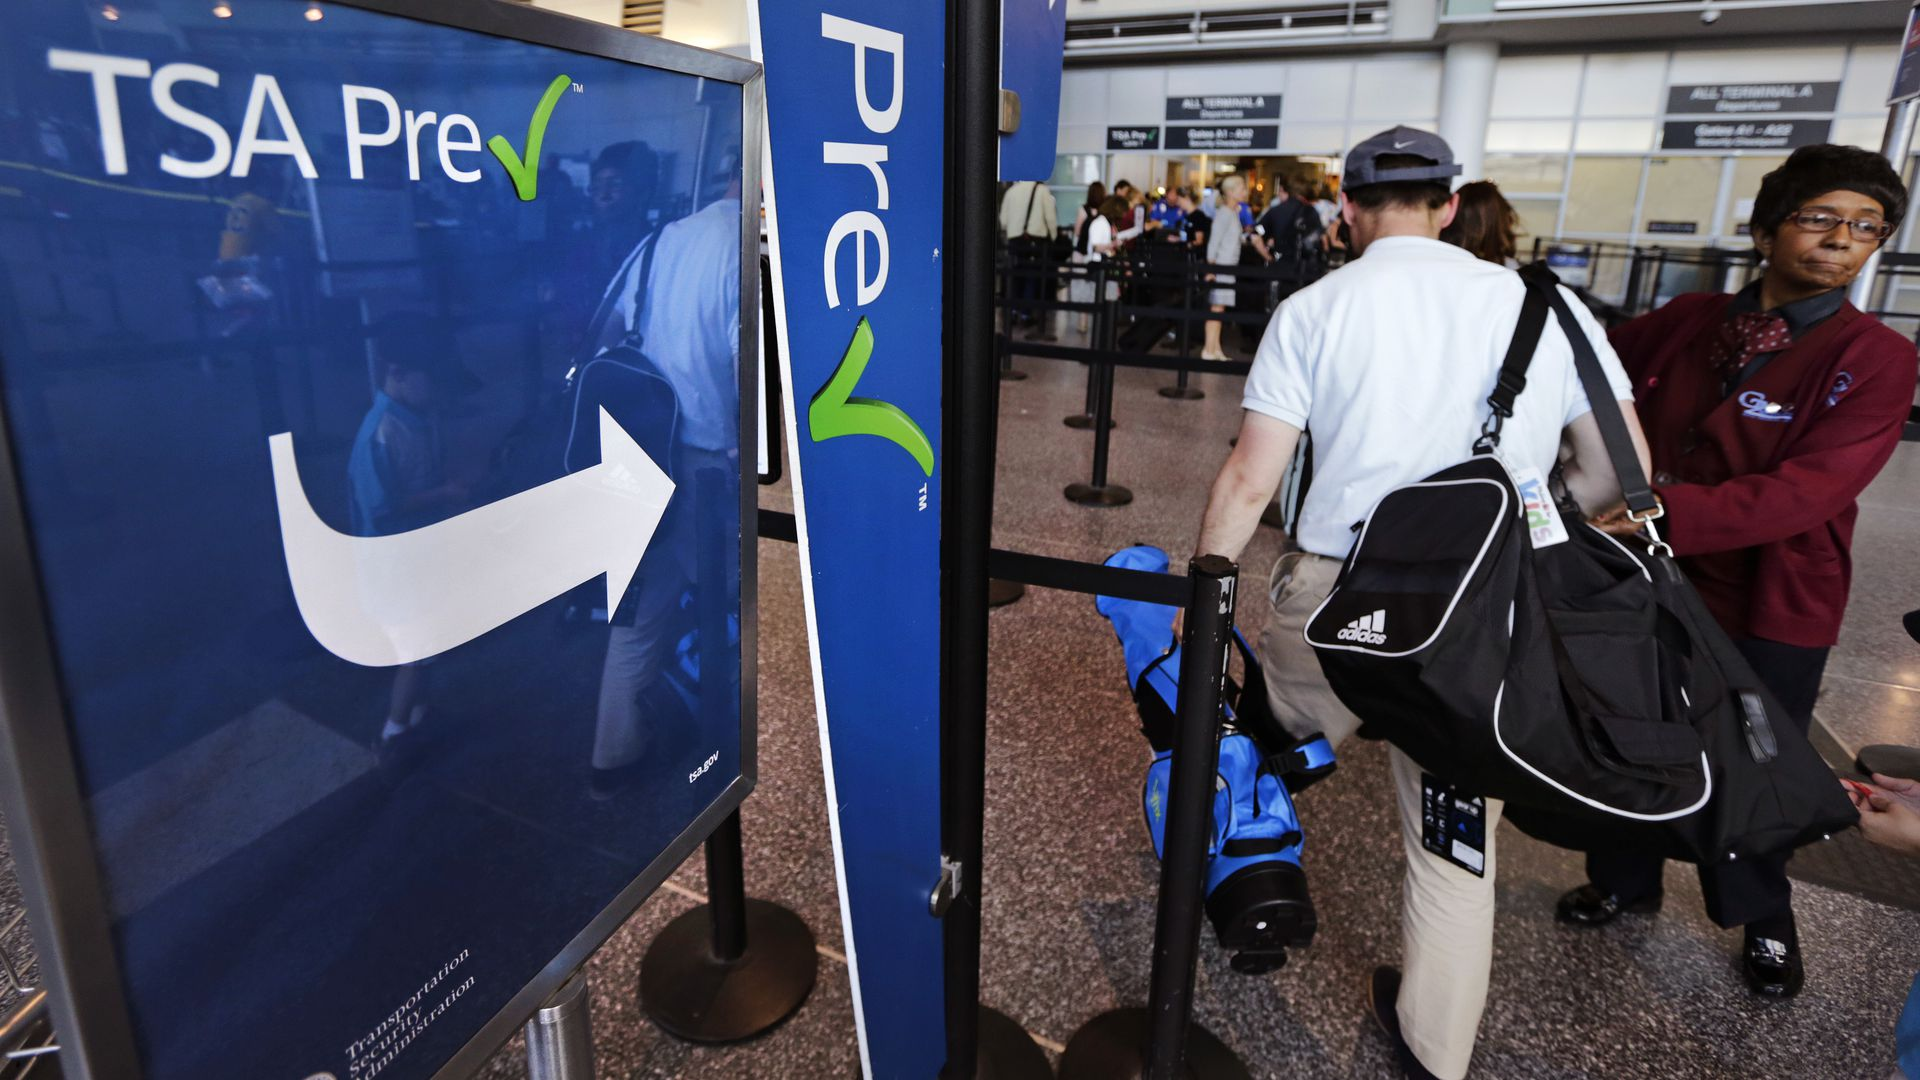 A passenger passes by a sign for the Transportation Security Administration's TSA Precheck line in Boston Logan.